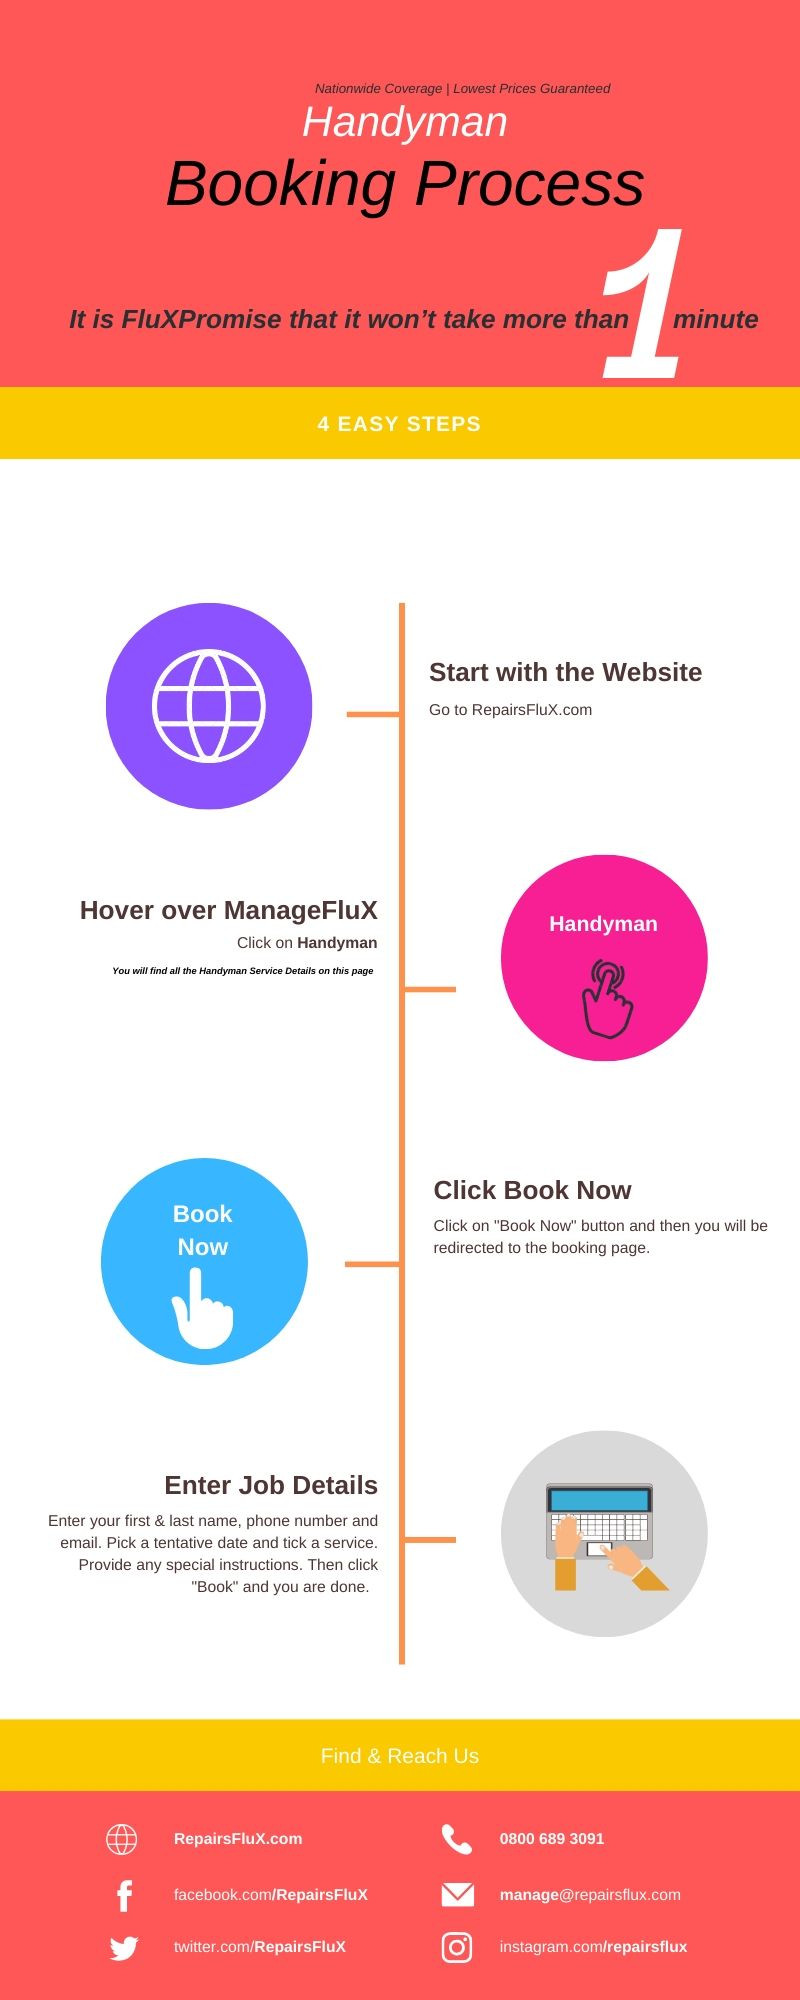 ManageFluX Service Booking Process